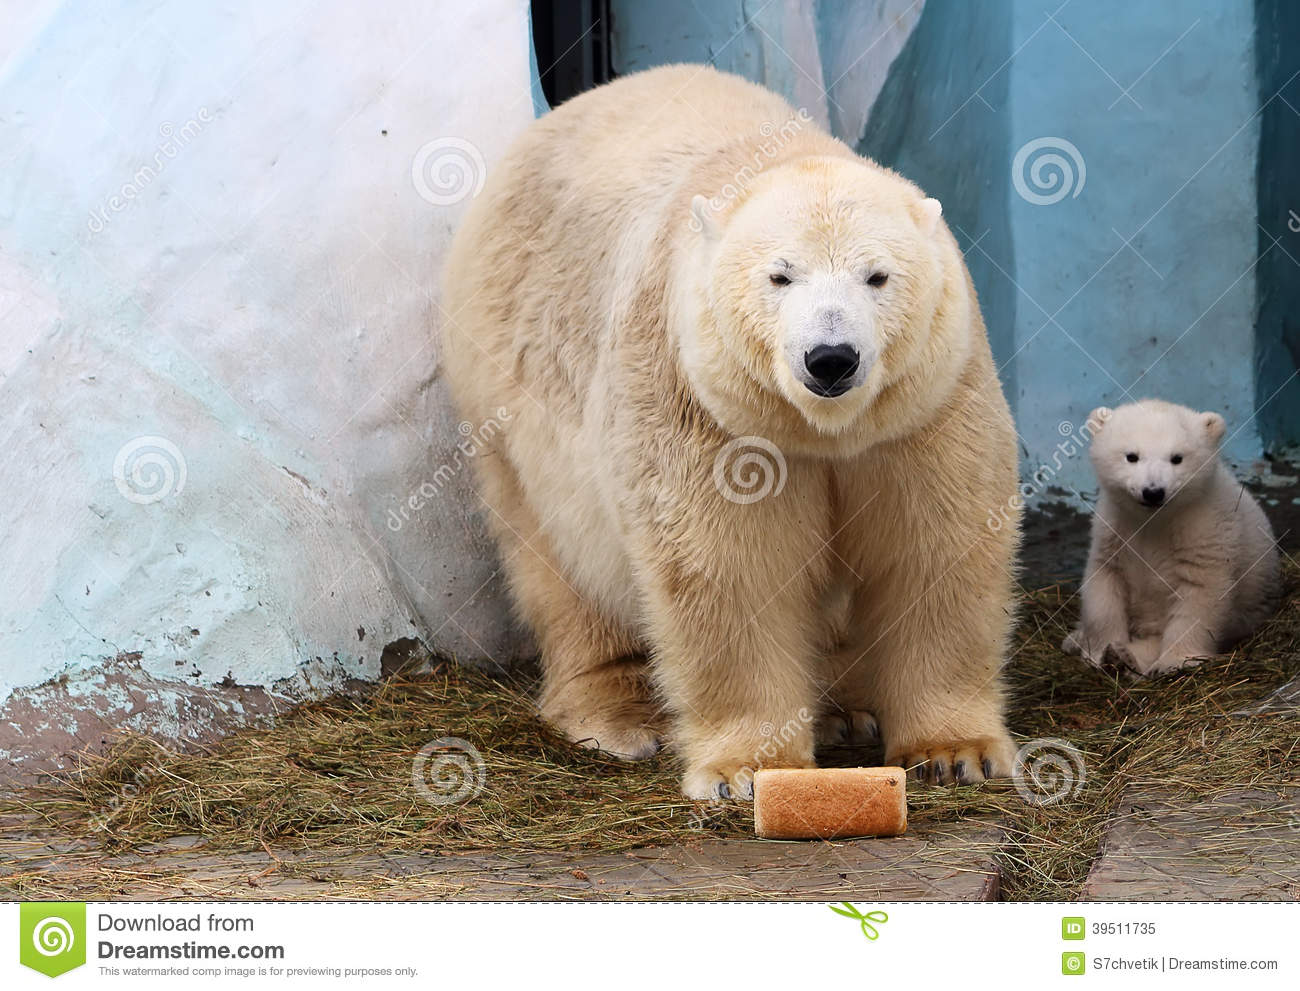 Bear and her cub with a loaf of bread